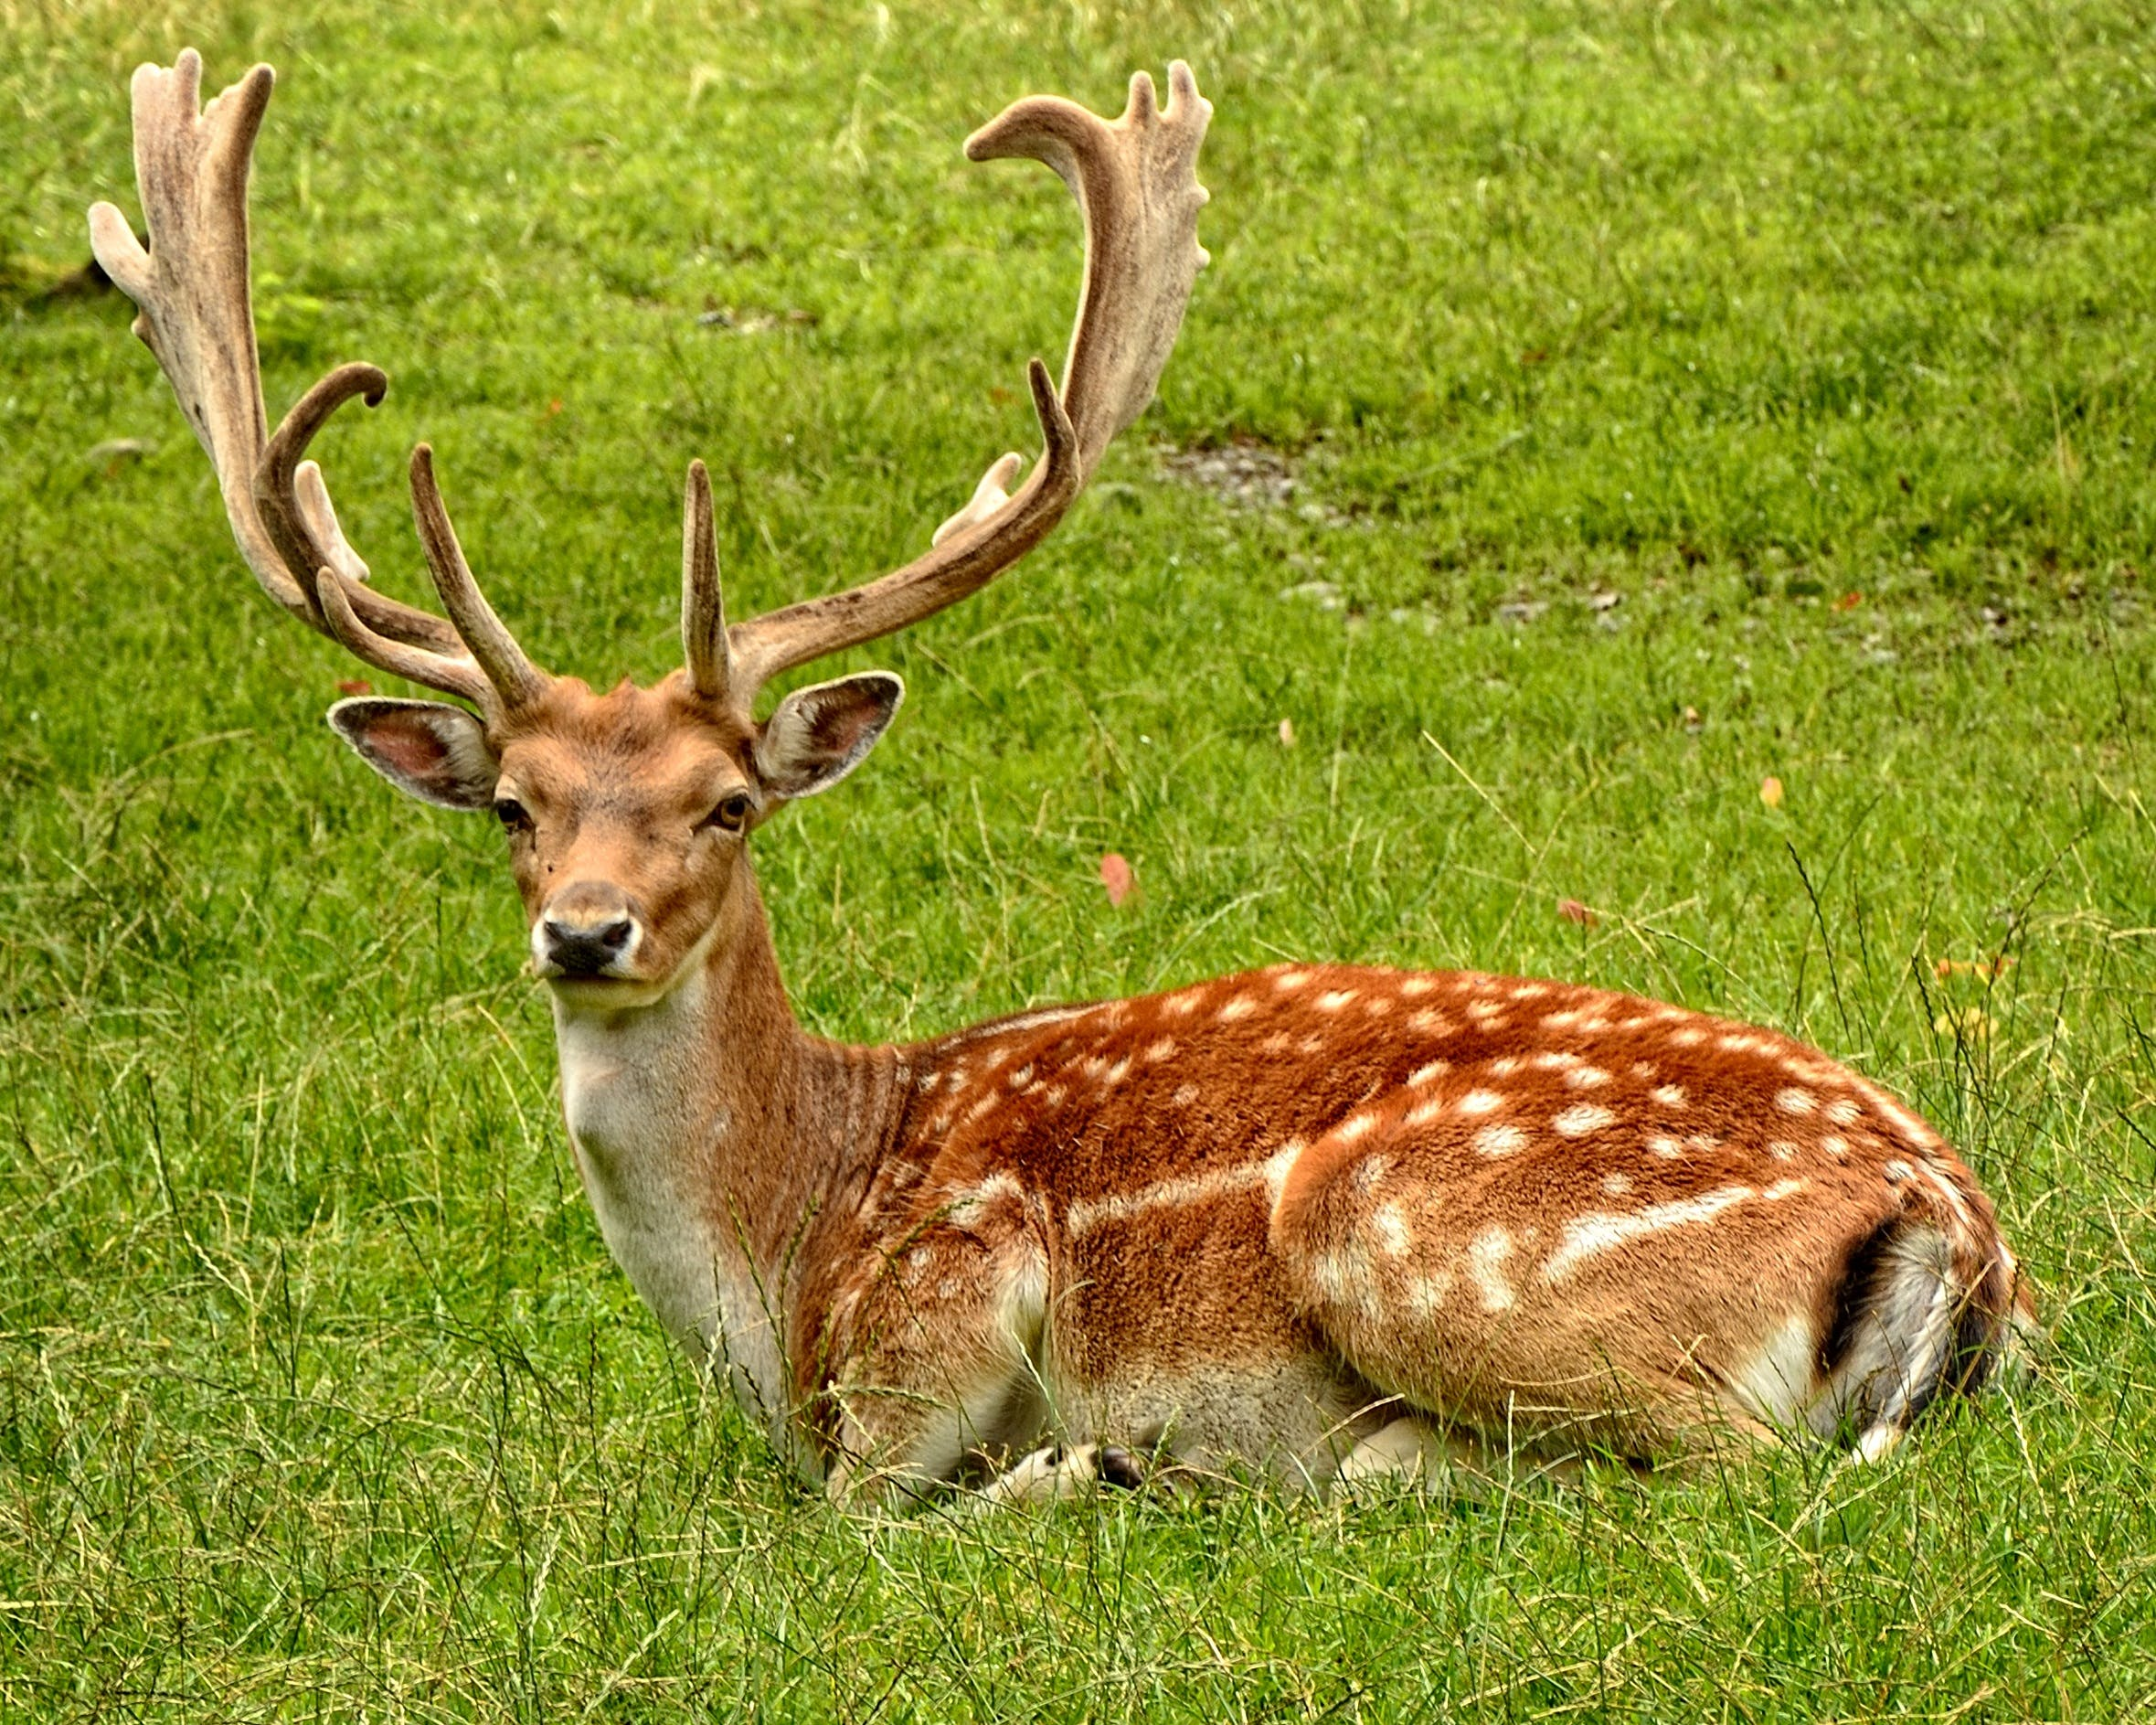 Brown Deer Laying on Grass Field